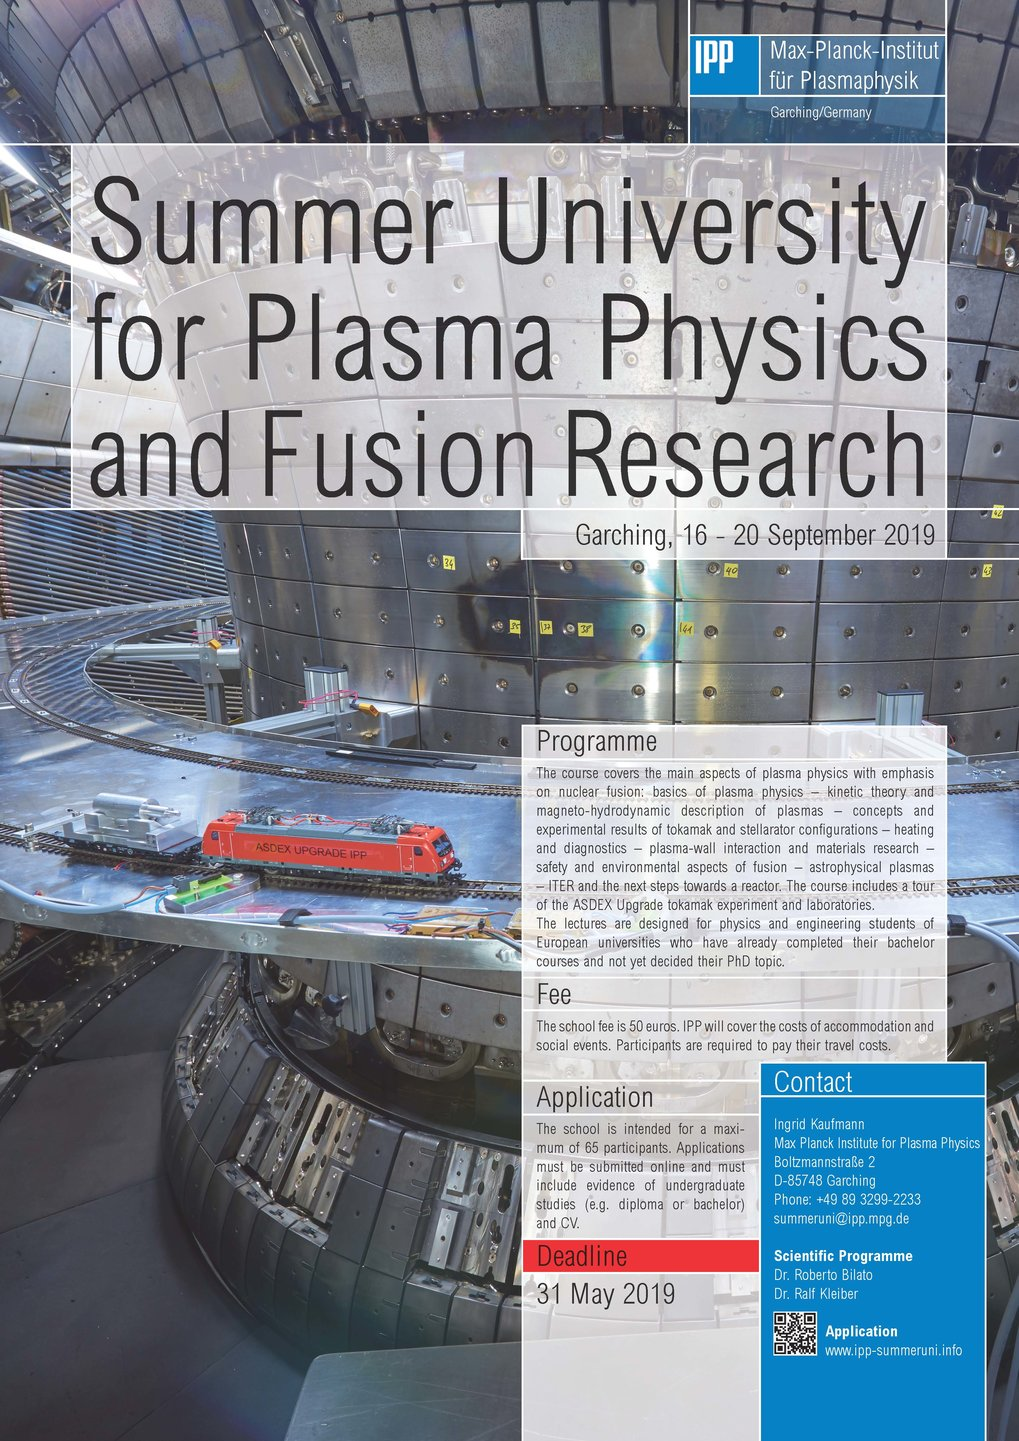 Summer University for Plasma Physics at IPP in Garching